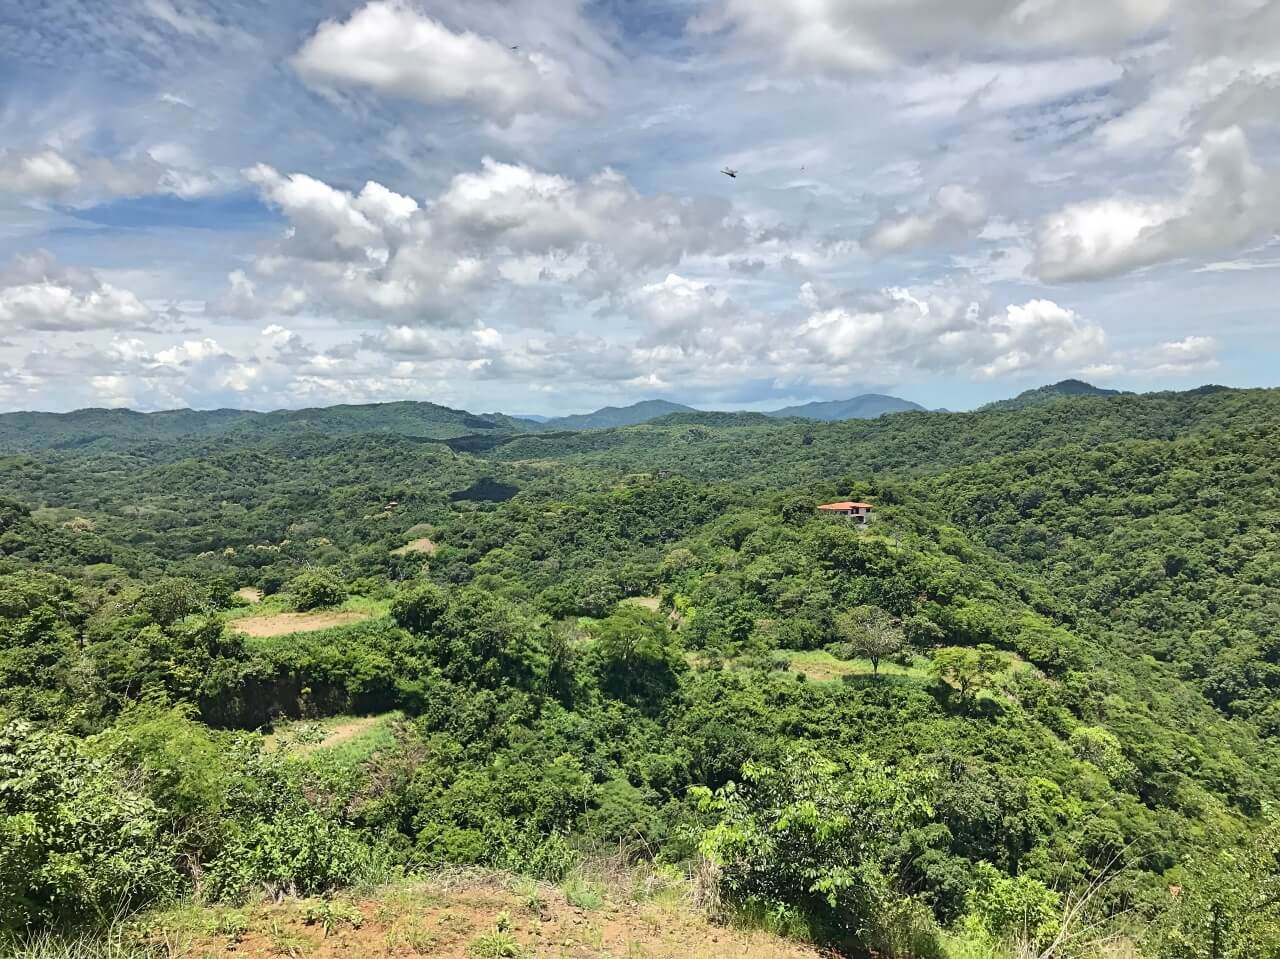 View from Costa Rica's best zipline